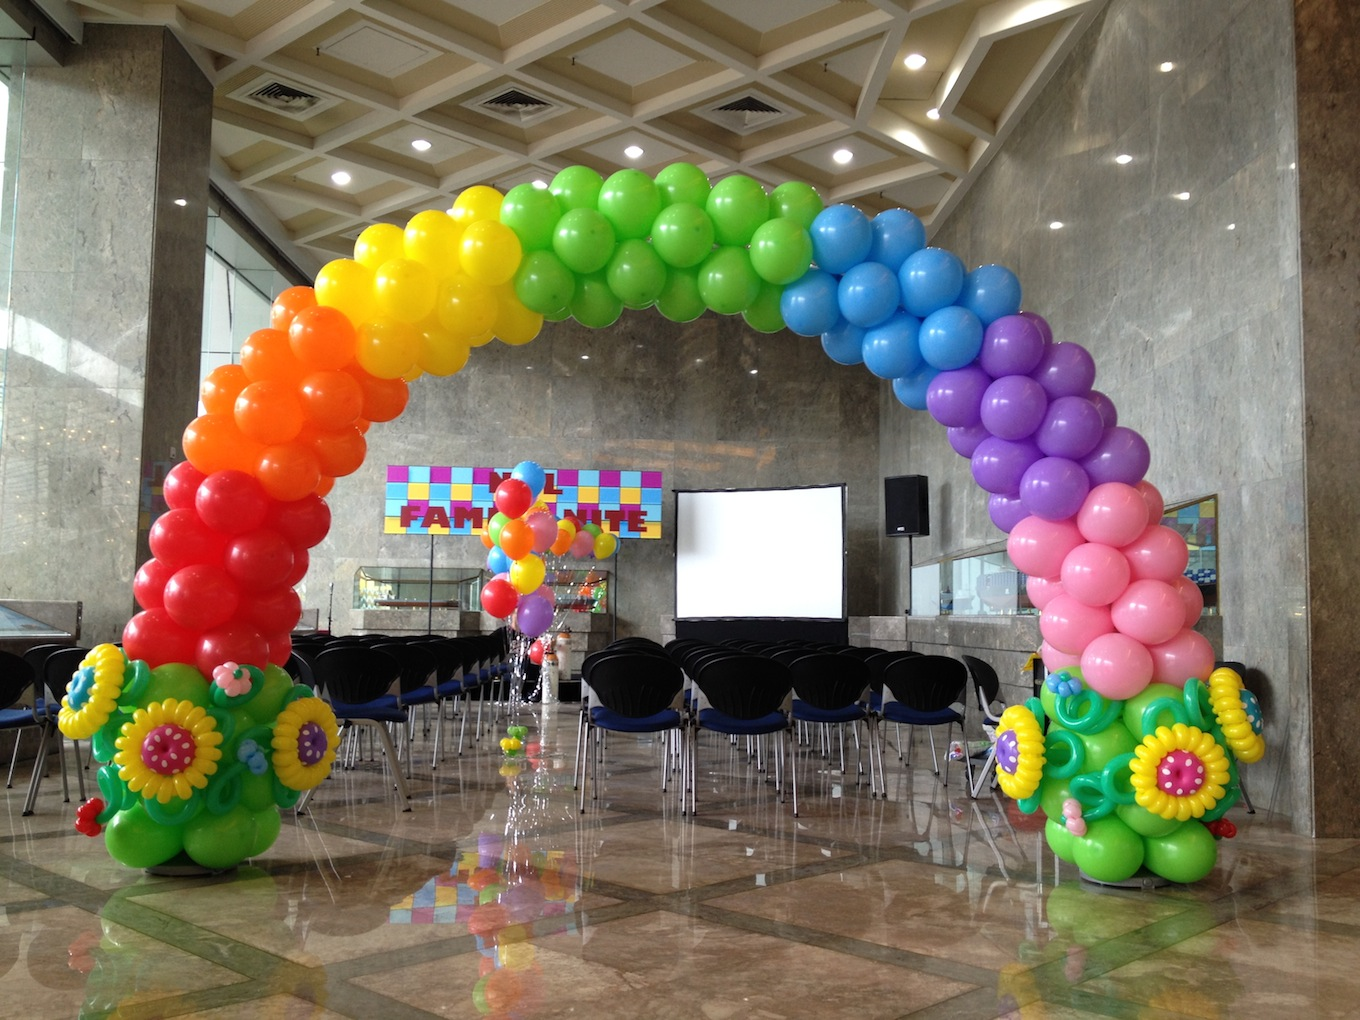 Balloon tunnel that balloons for Ballons decoration